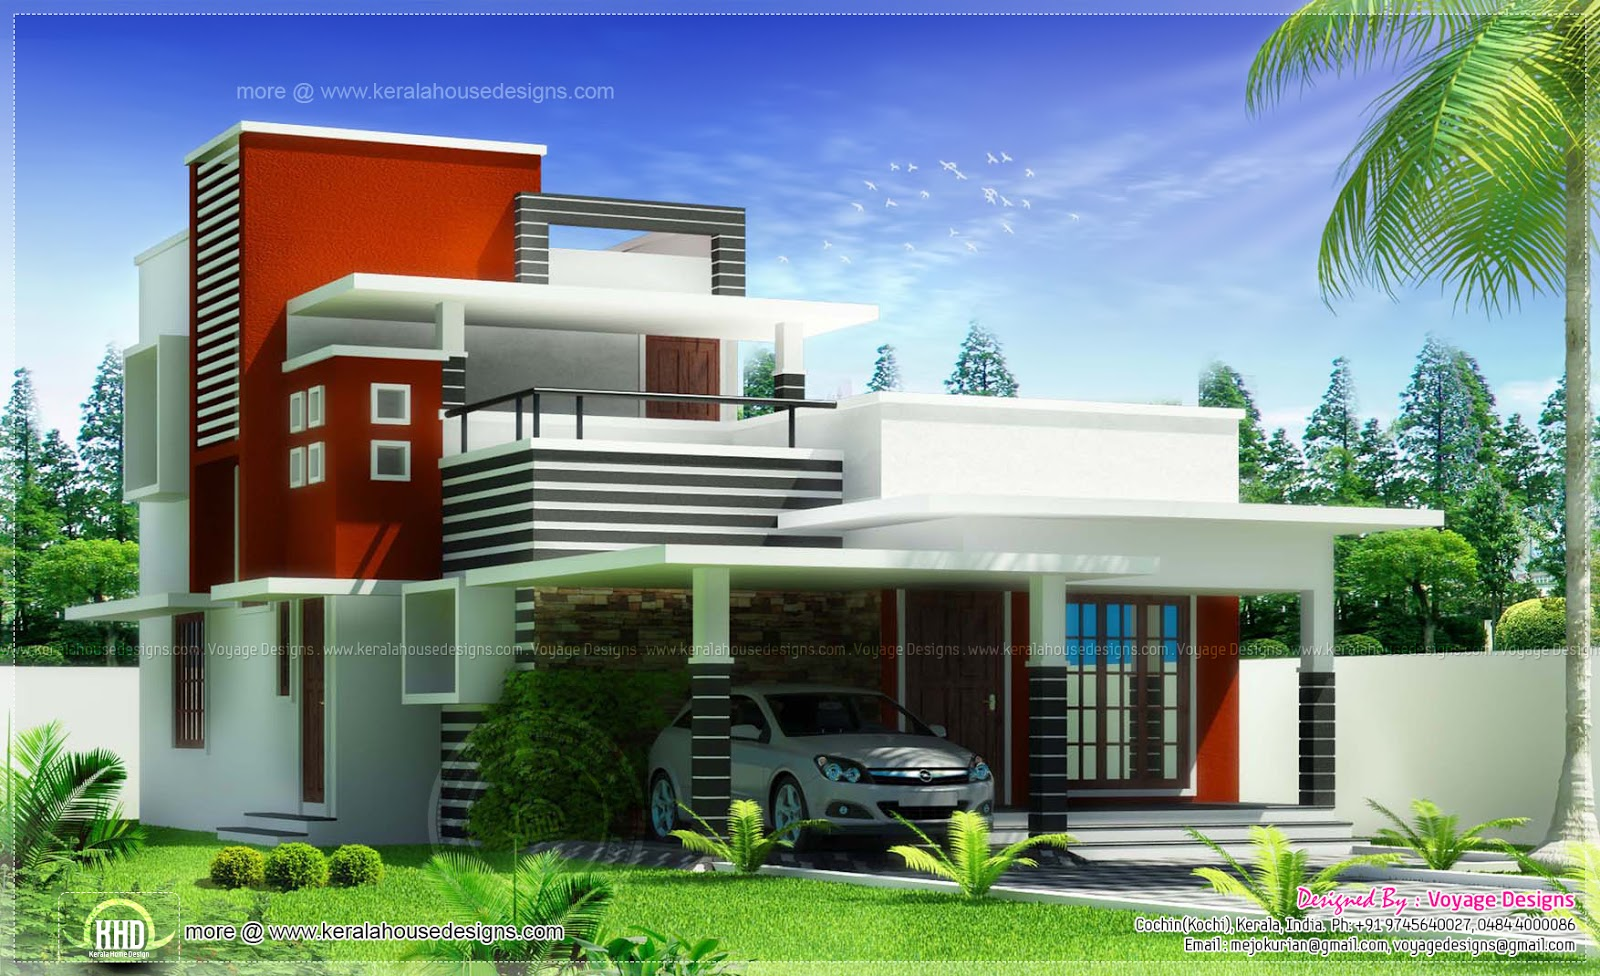 3 bed room contemporary style house kerala home design for Modern house in kerala